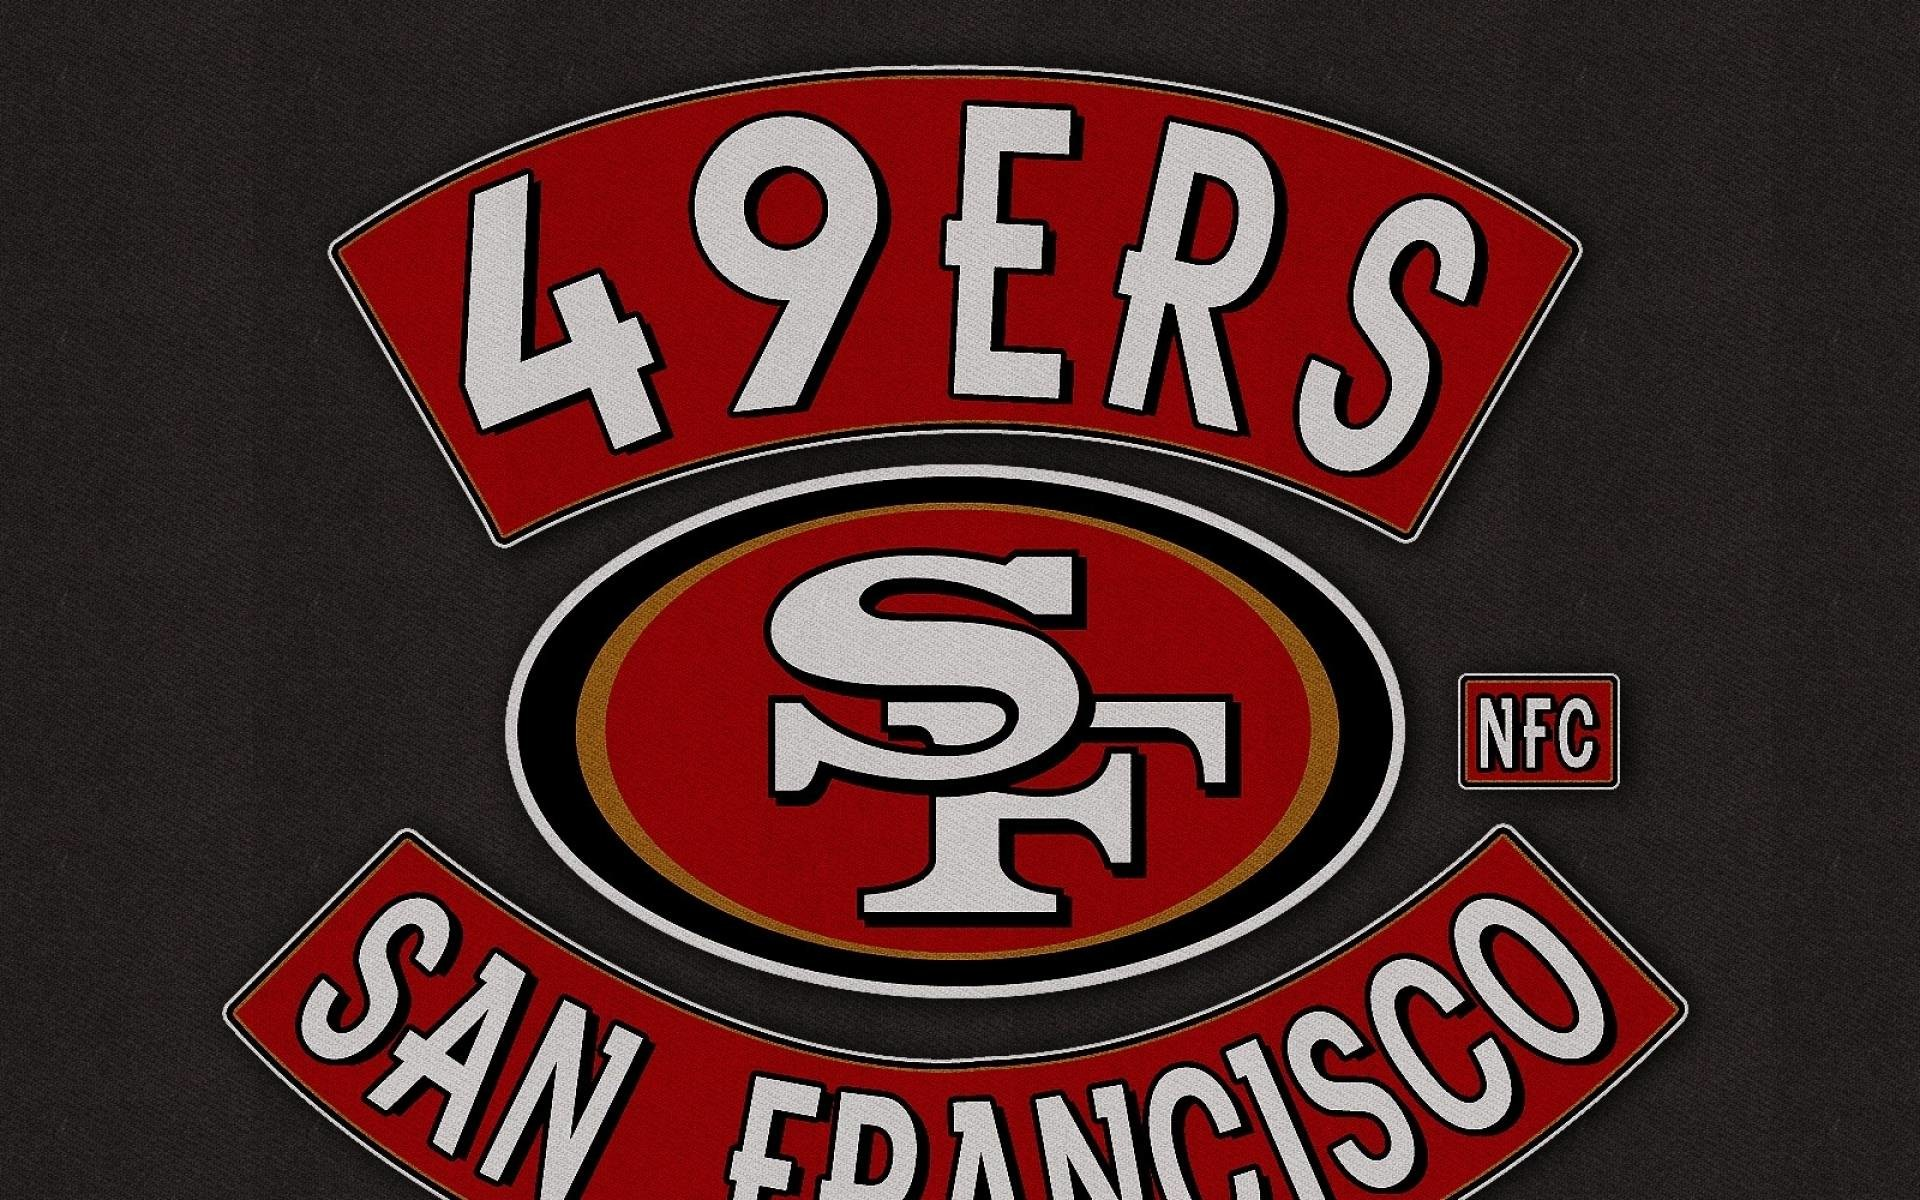 1920x1200 San Francisco 49ers Full HQ Images | HD Wallpapers · Download · Boldin San Francisco 49Ers Wallpaper Widescreen